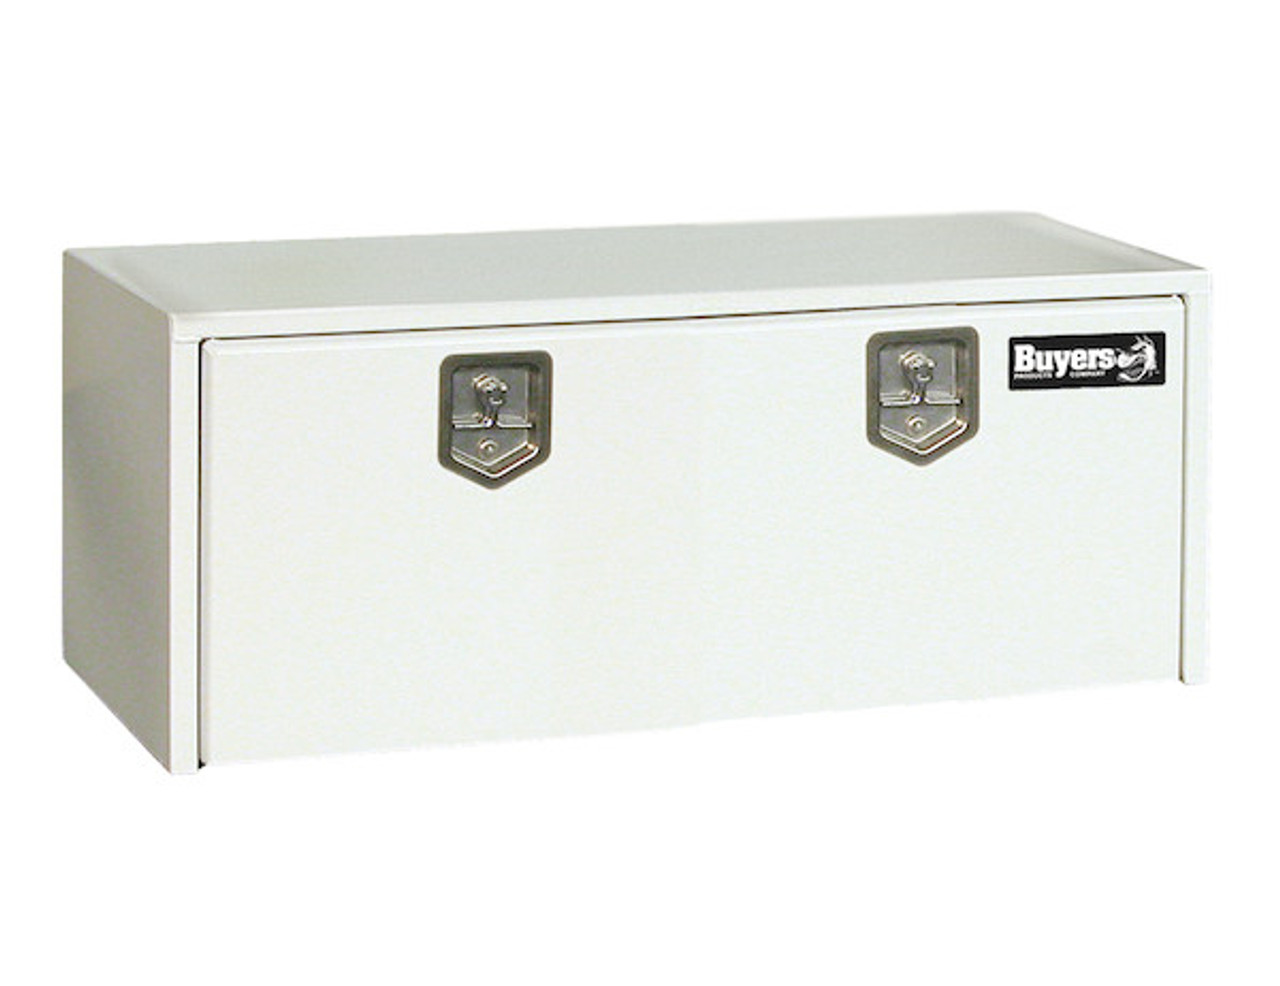 "1704410 BUYERS PRODUCTS WHITE STEEL UNDERBODY TRUCK TOOLBOX 24""HX24""DX48""W"